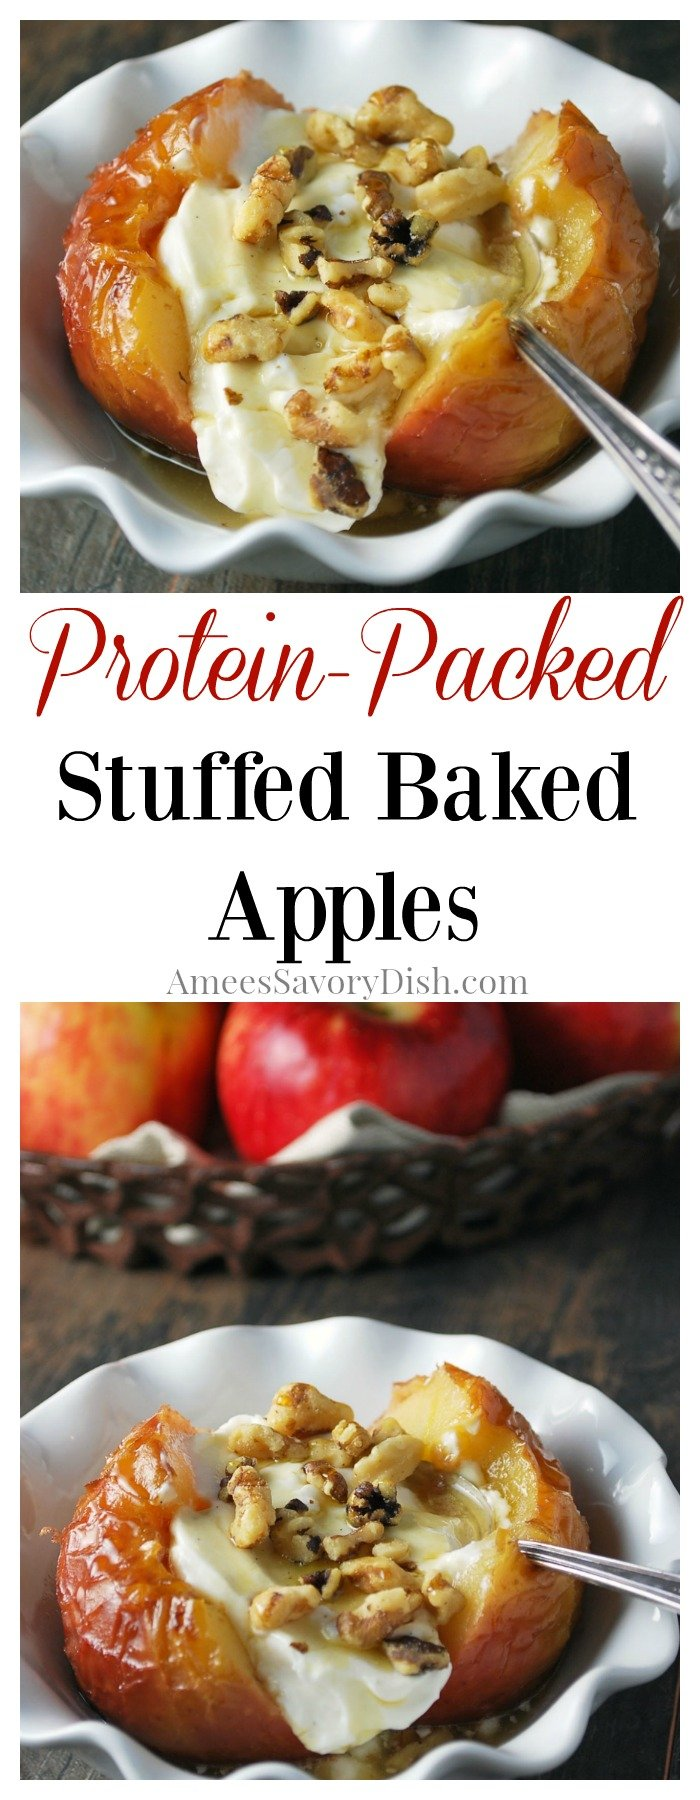 Protein-Packed Stuffed Baked Apples are a deliciously easy dessert made with apples, yogurt, nuts and maple syrup.